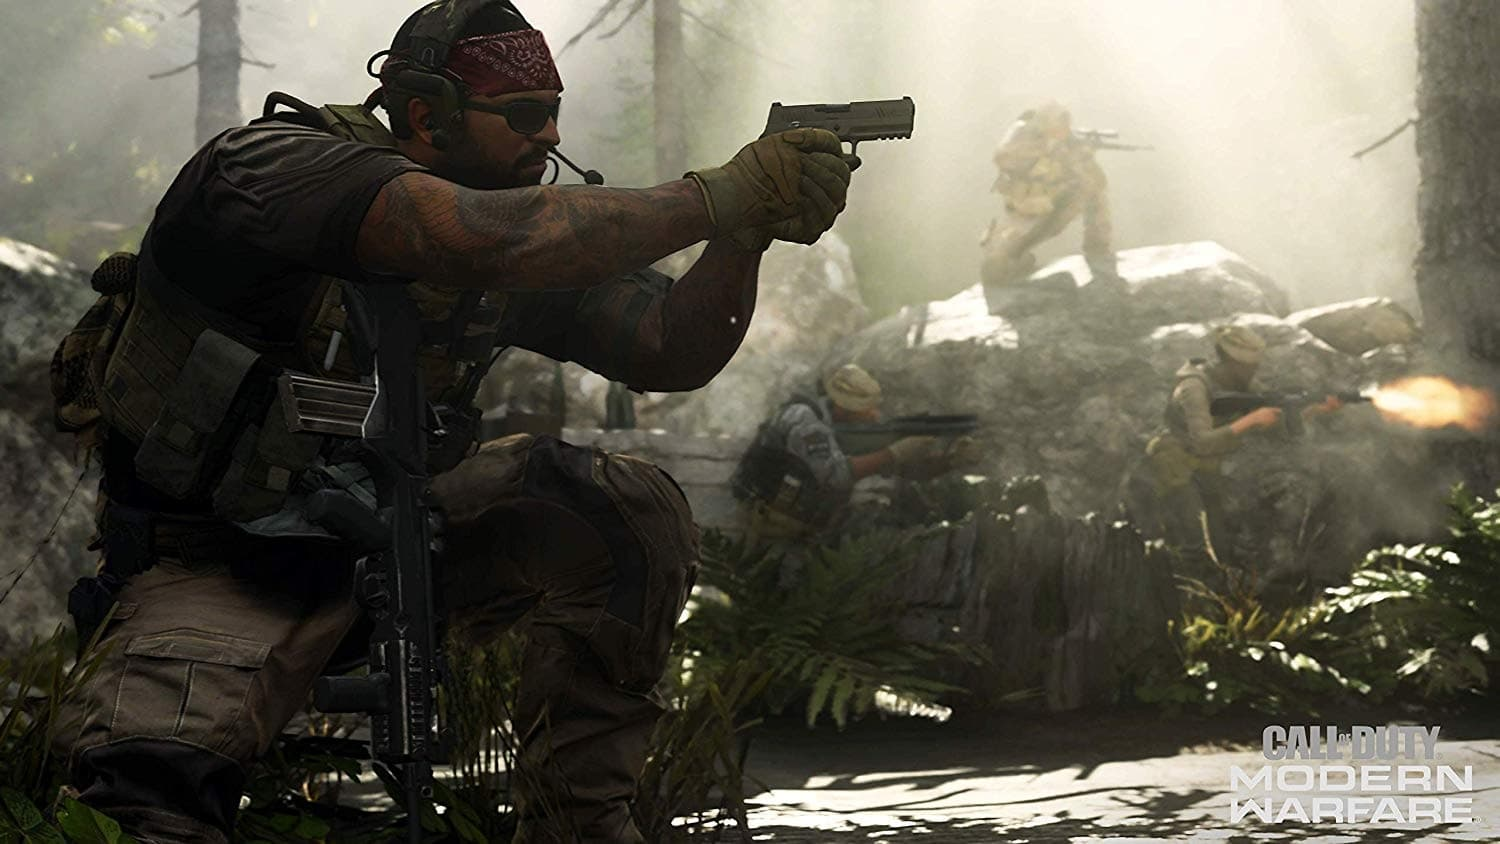 call of duty modern warfare screenshot